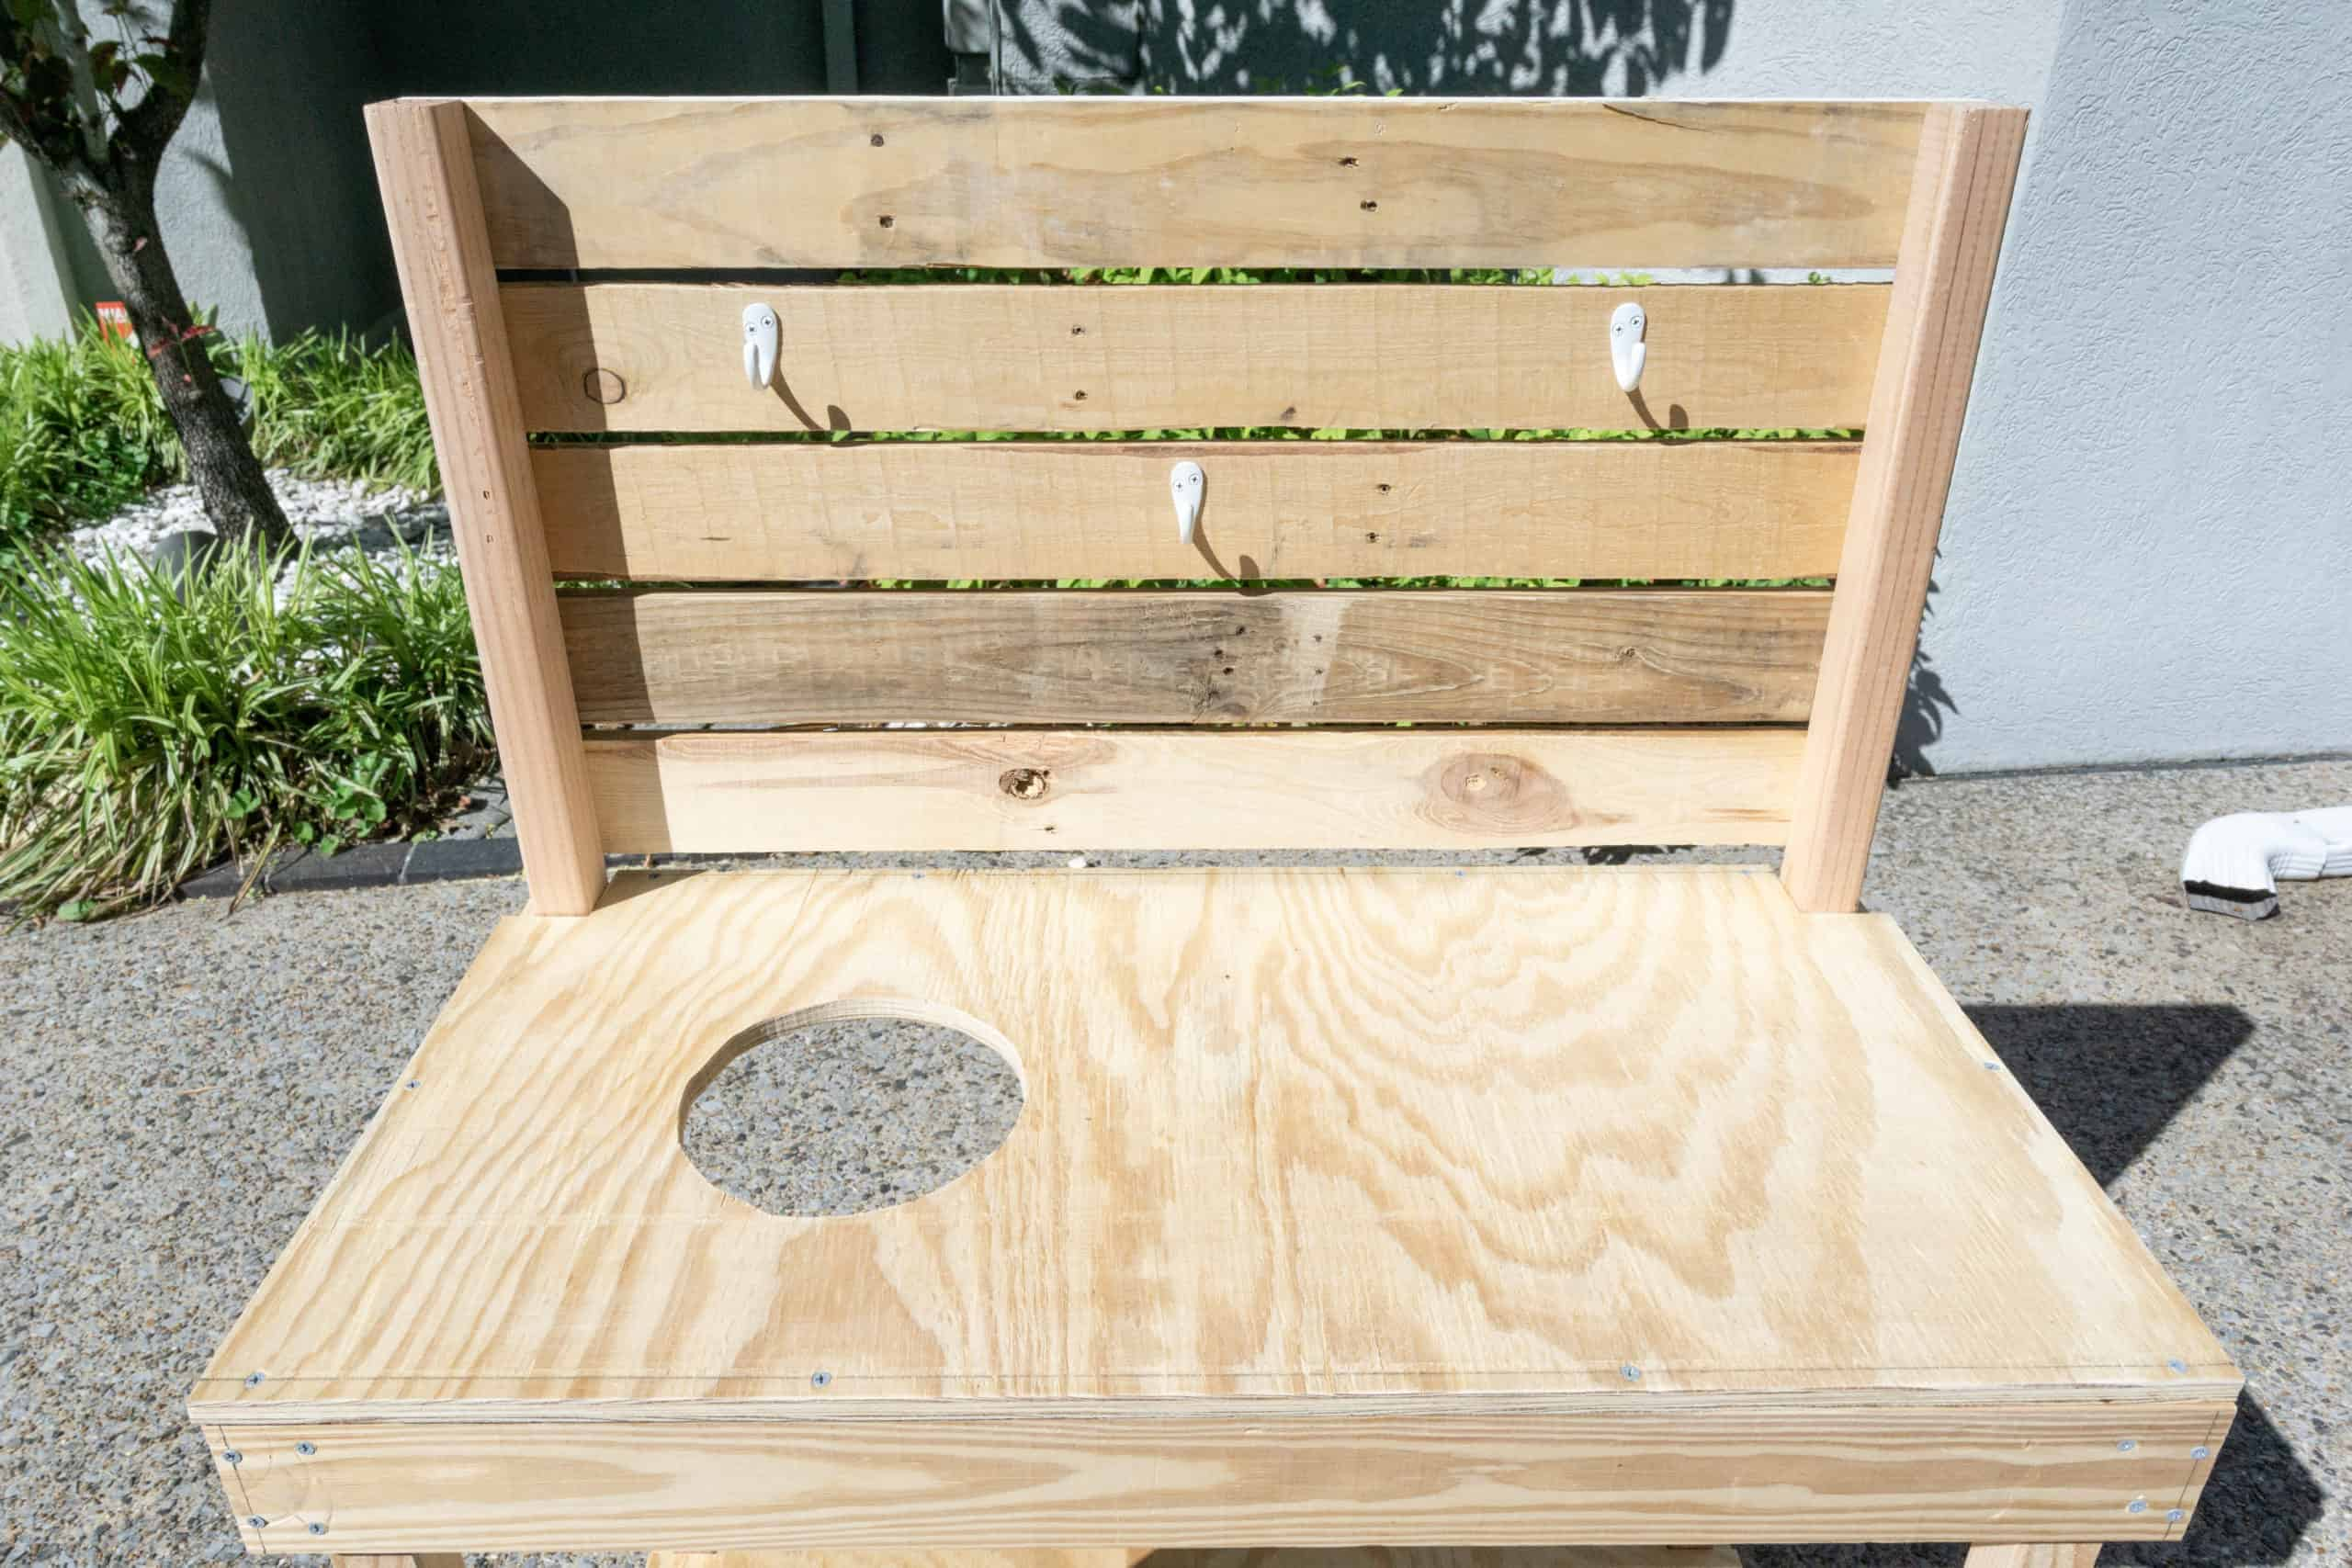 DIY mud kitchen - a step-by-step for how to build an inexpensive mud kitchen for your kids.